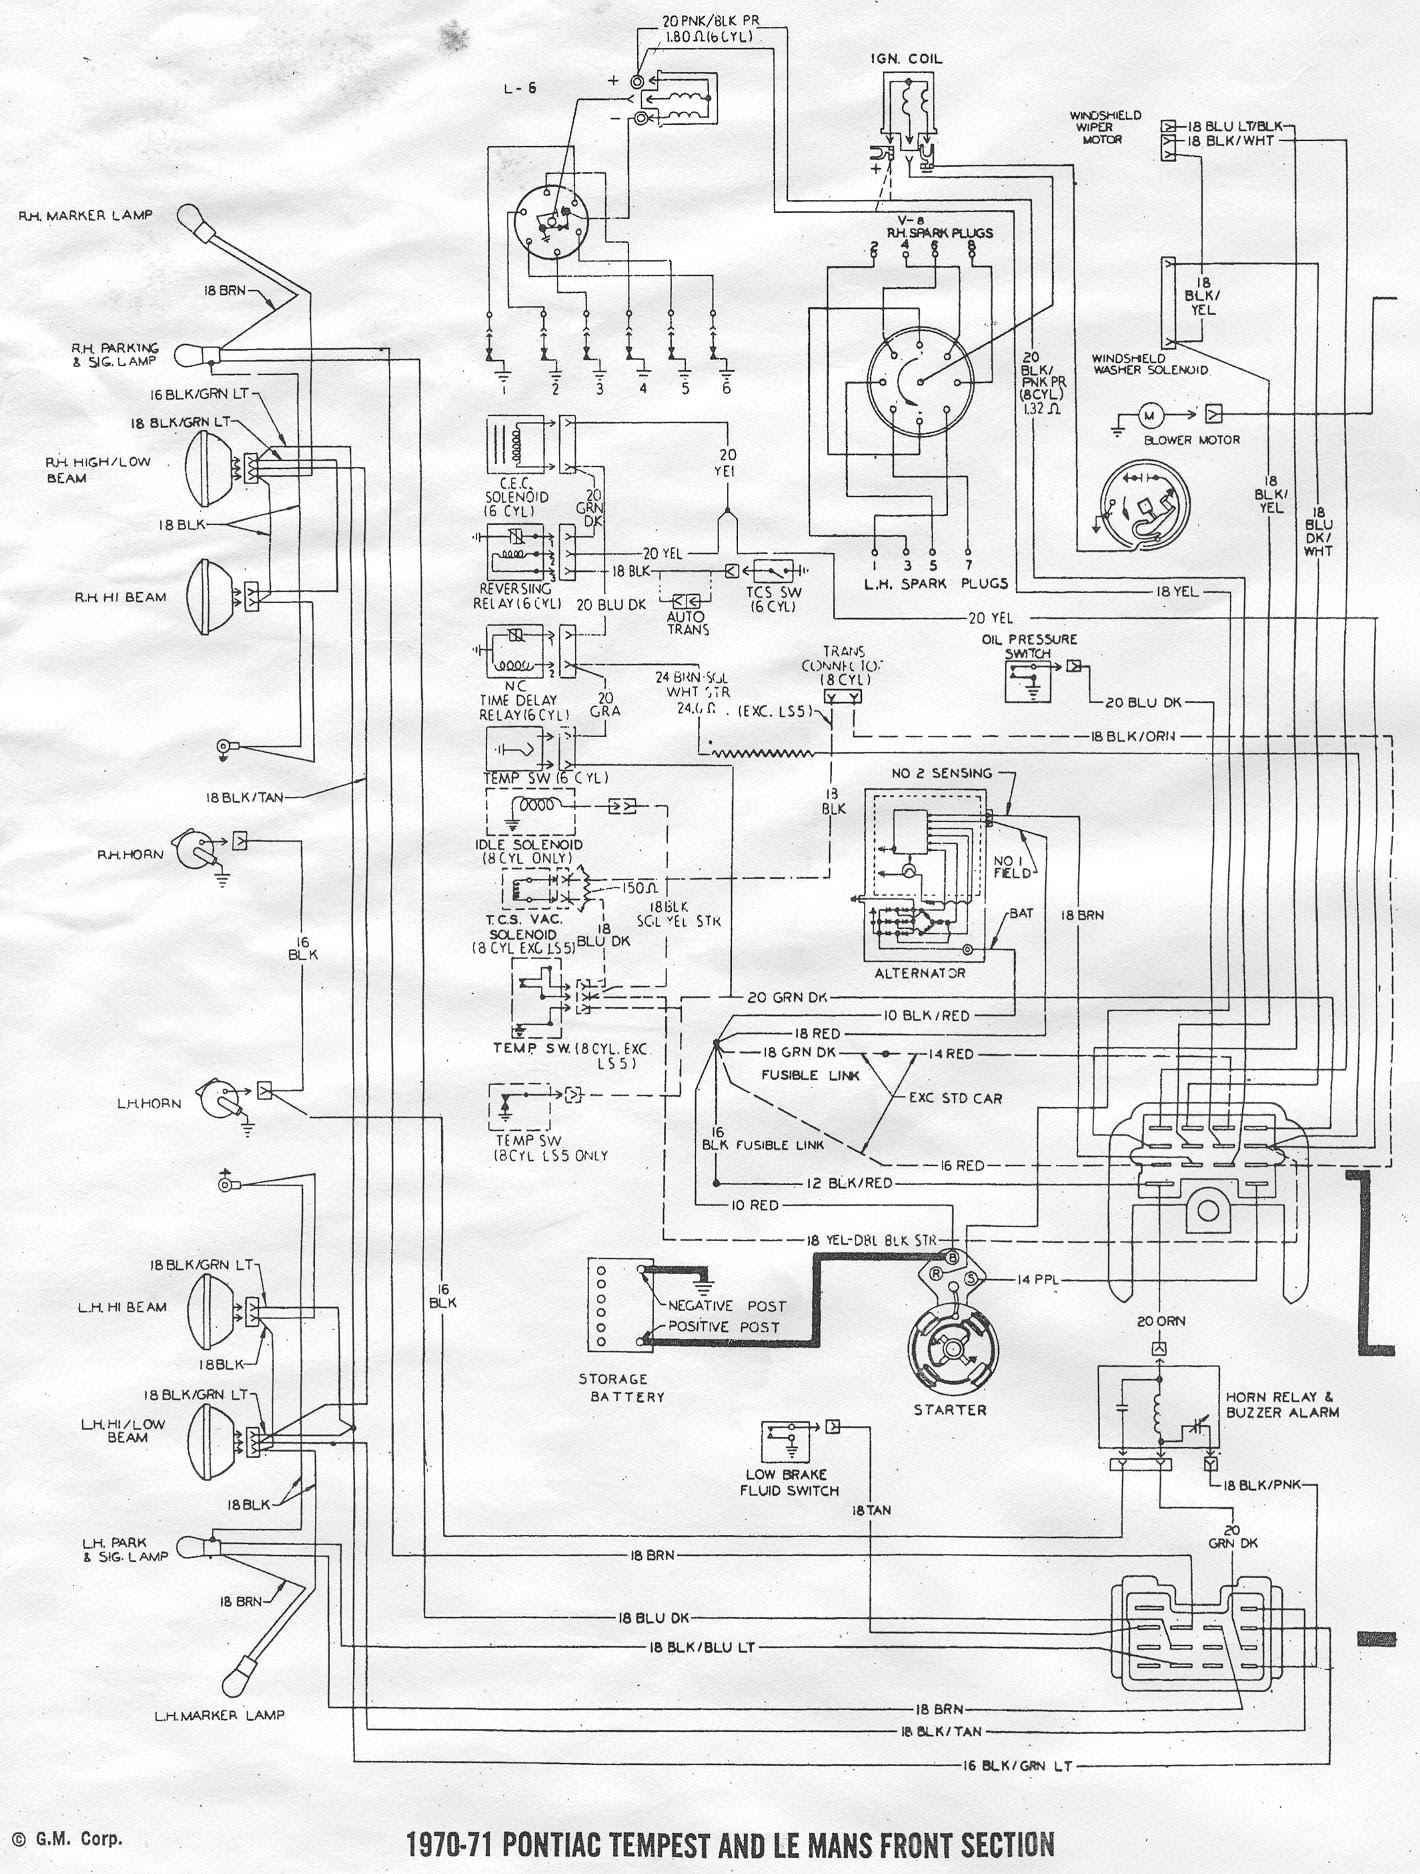 67 Pontiac Gto Wiring Diagram Infinity Jeep Liberty Stereo Wiring For Wiring Diagram Schematics